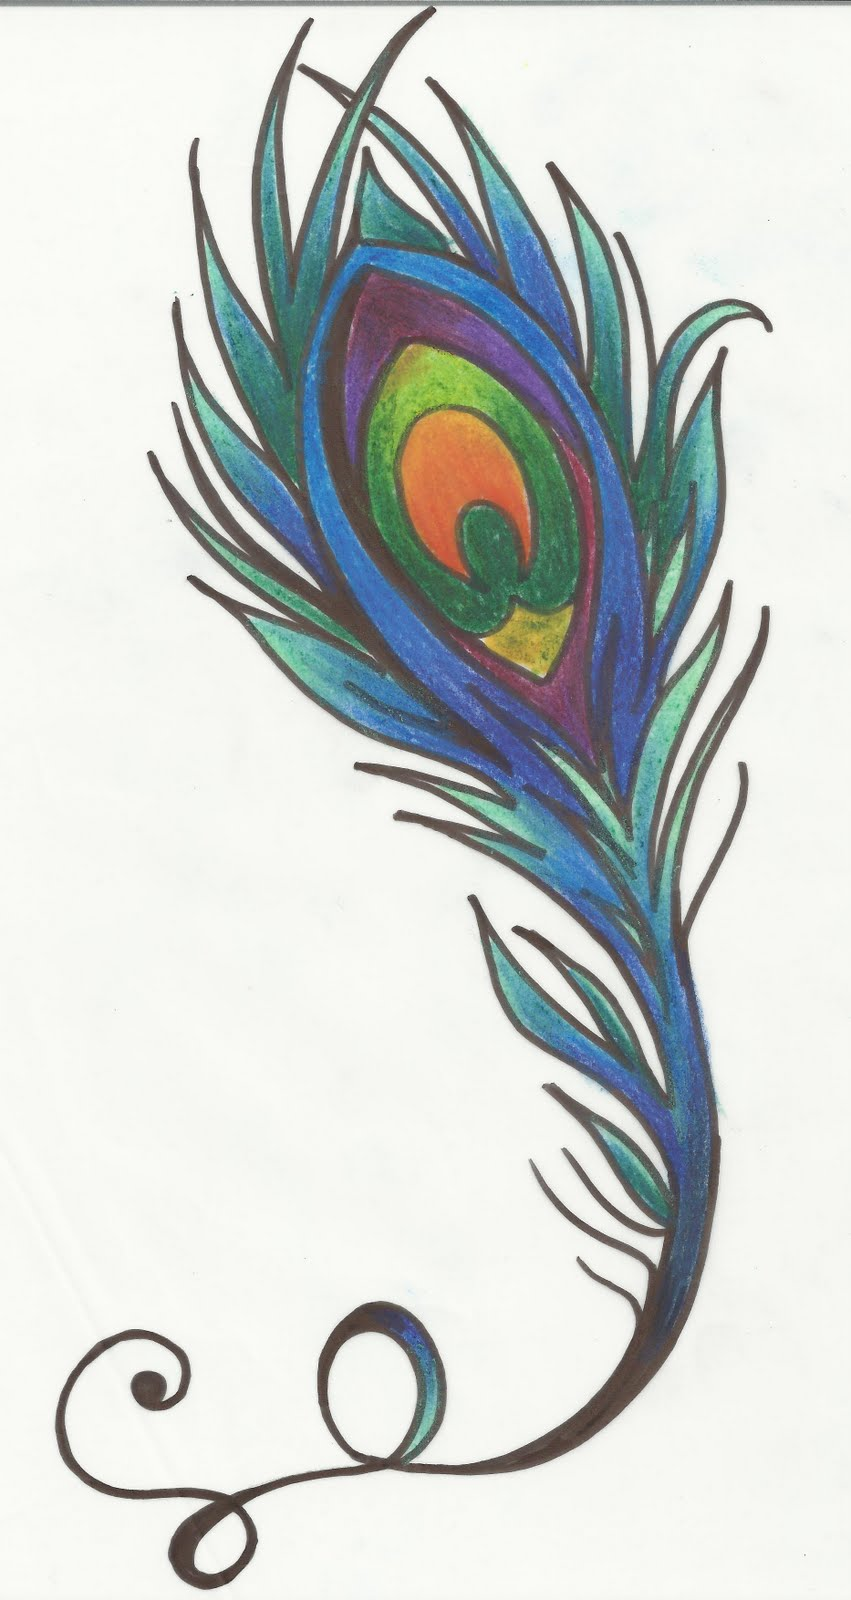 Peacock feather drawing tattoo - photo#4